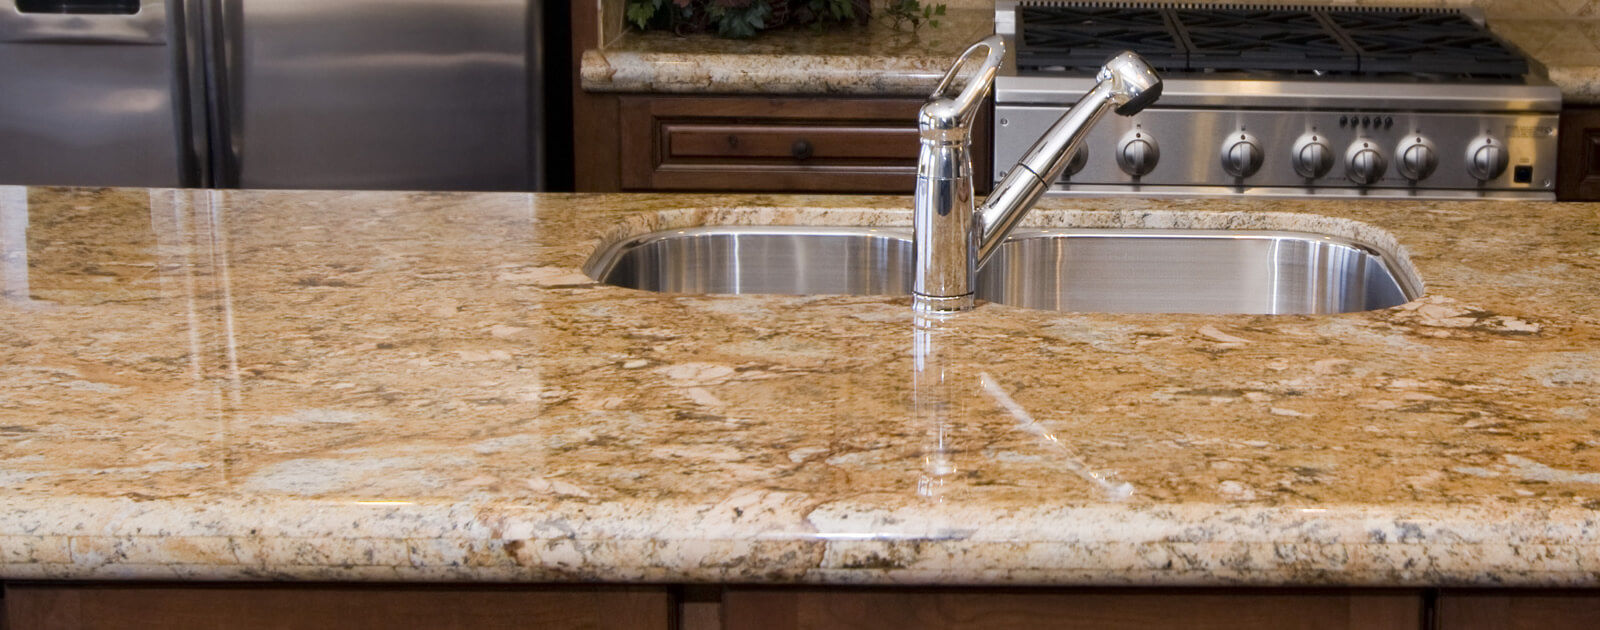 ldk granite quartz in chicago countertops kitchen countertop the